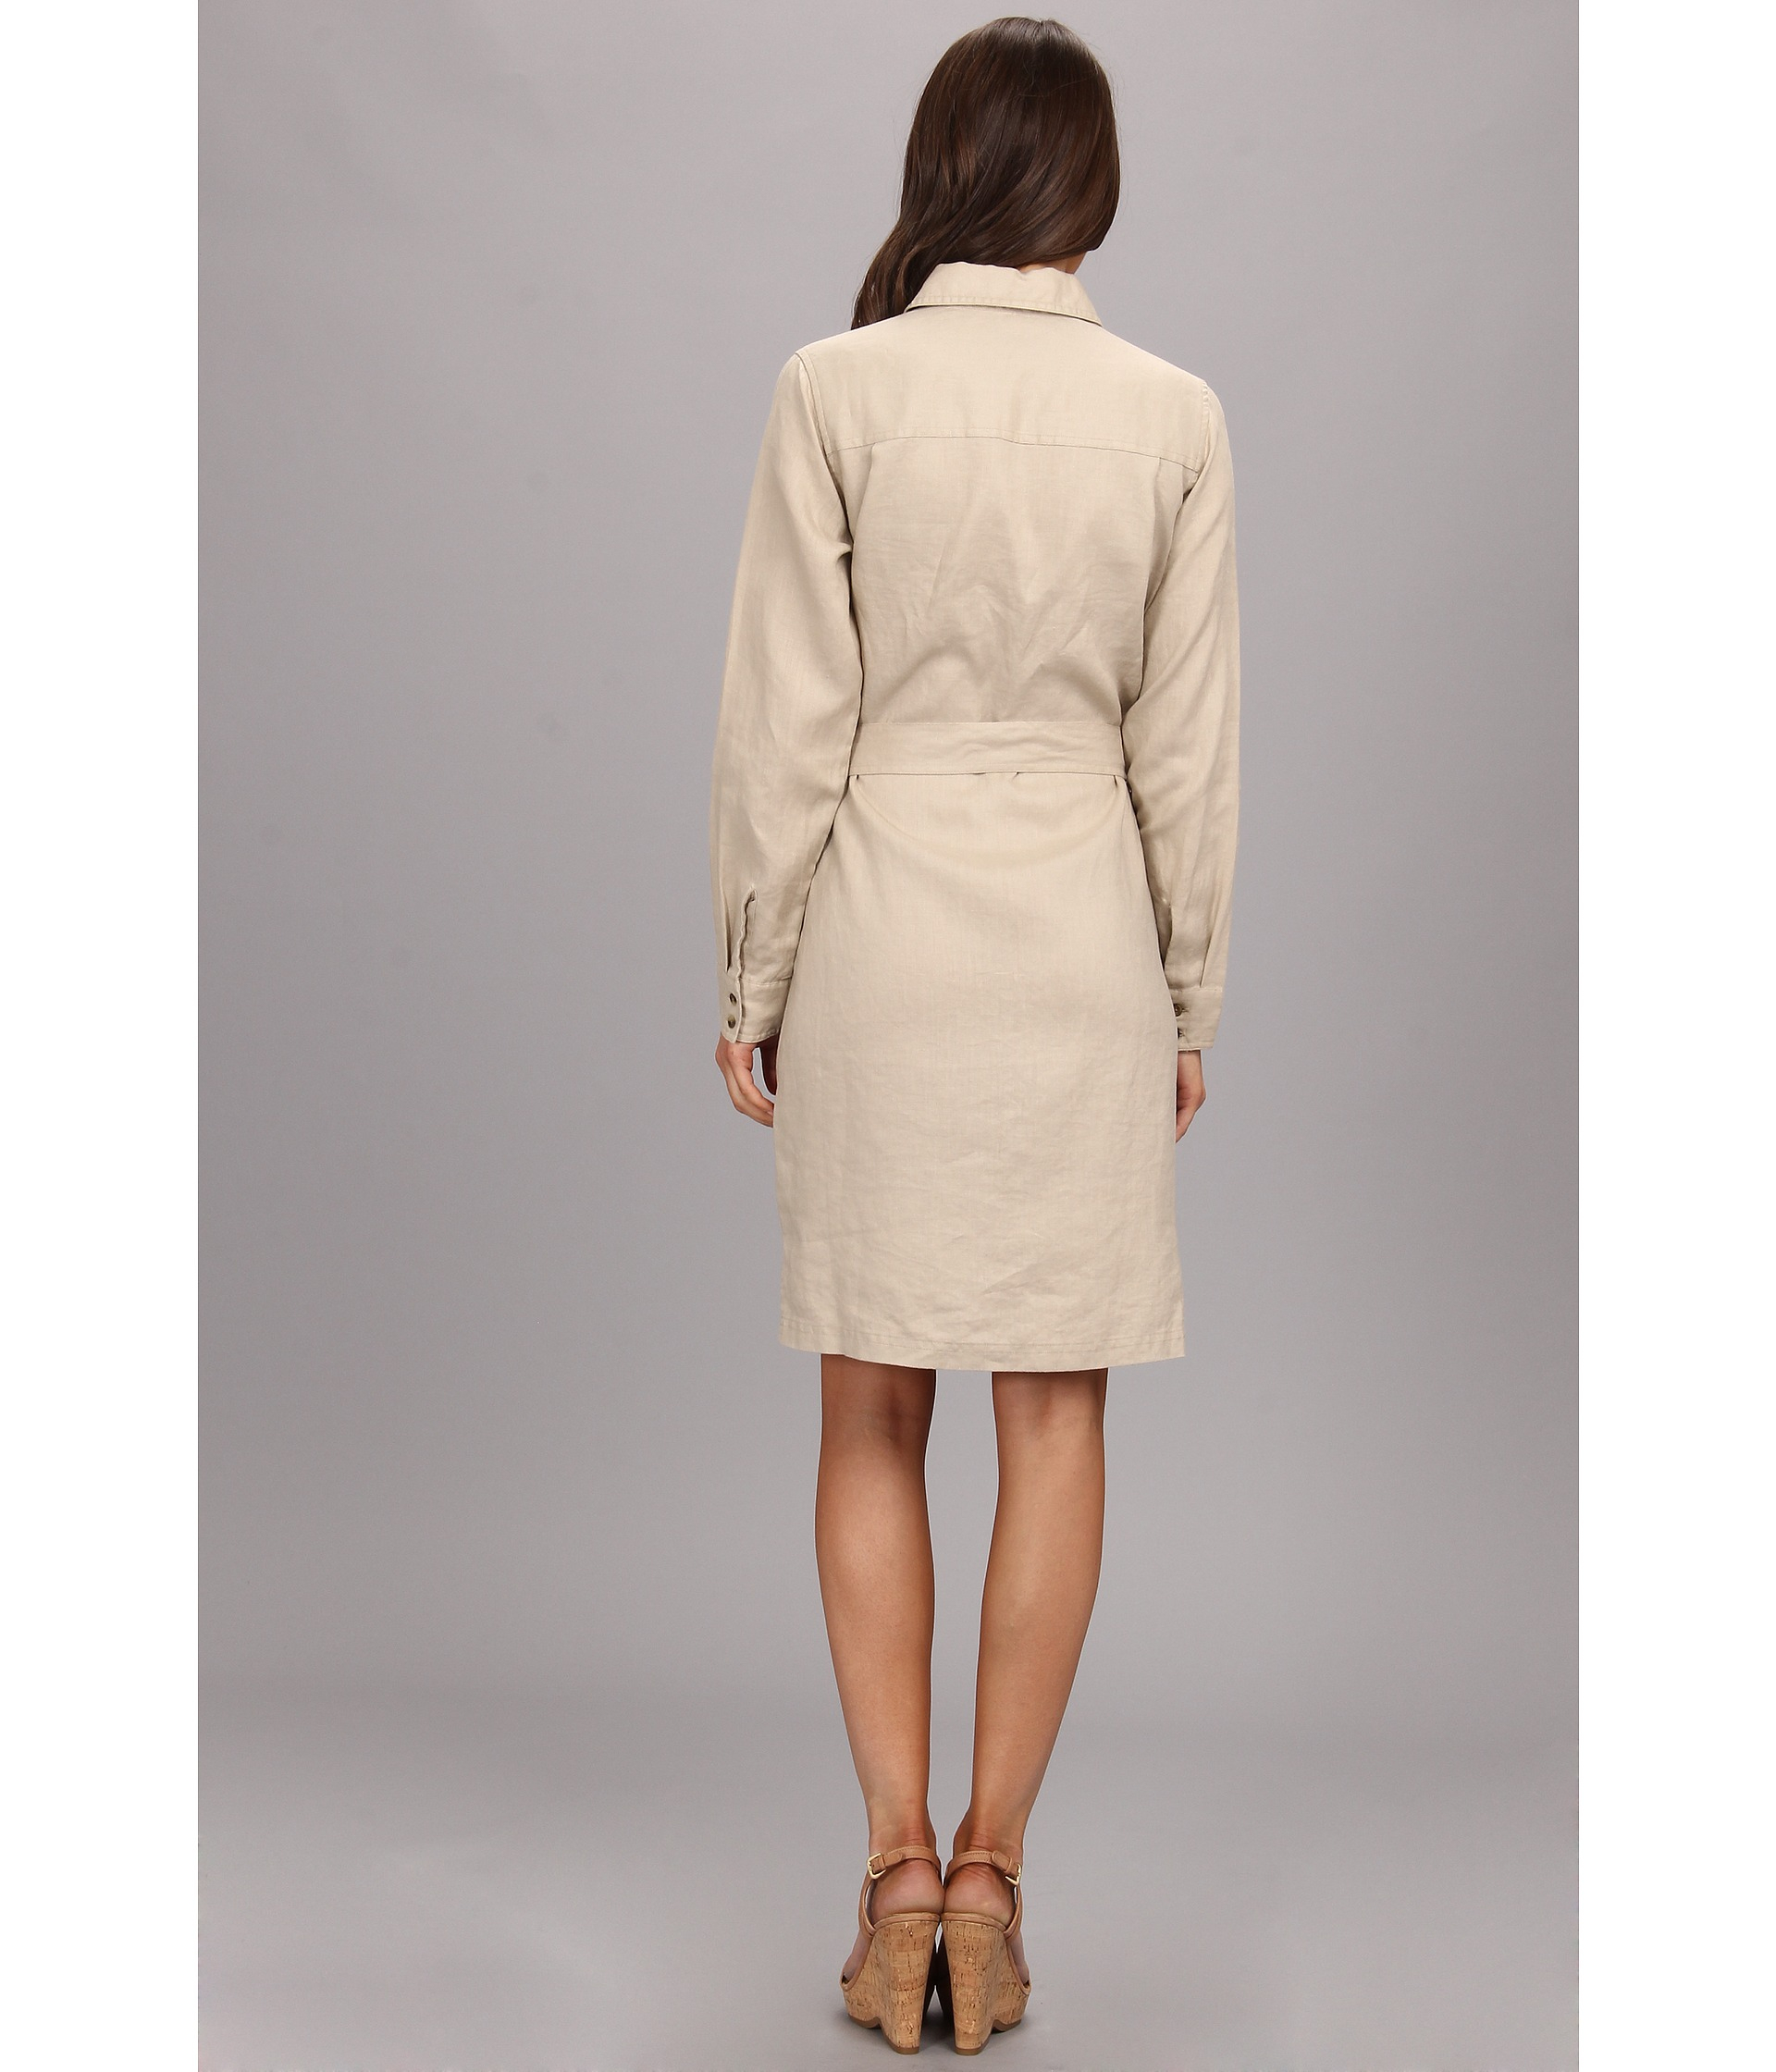 5742a2bcc17 Pendleton Palisades Linen Shirt Dress in Natural - Lyst